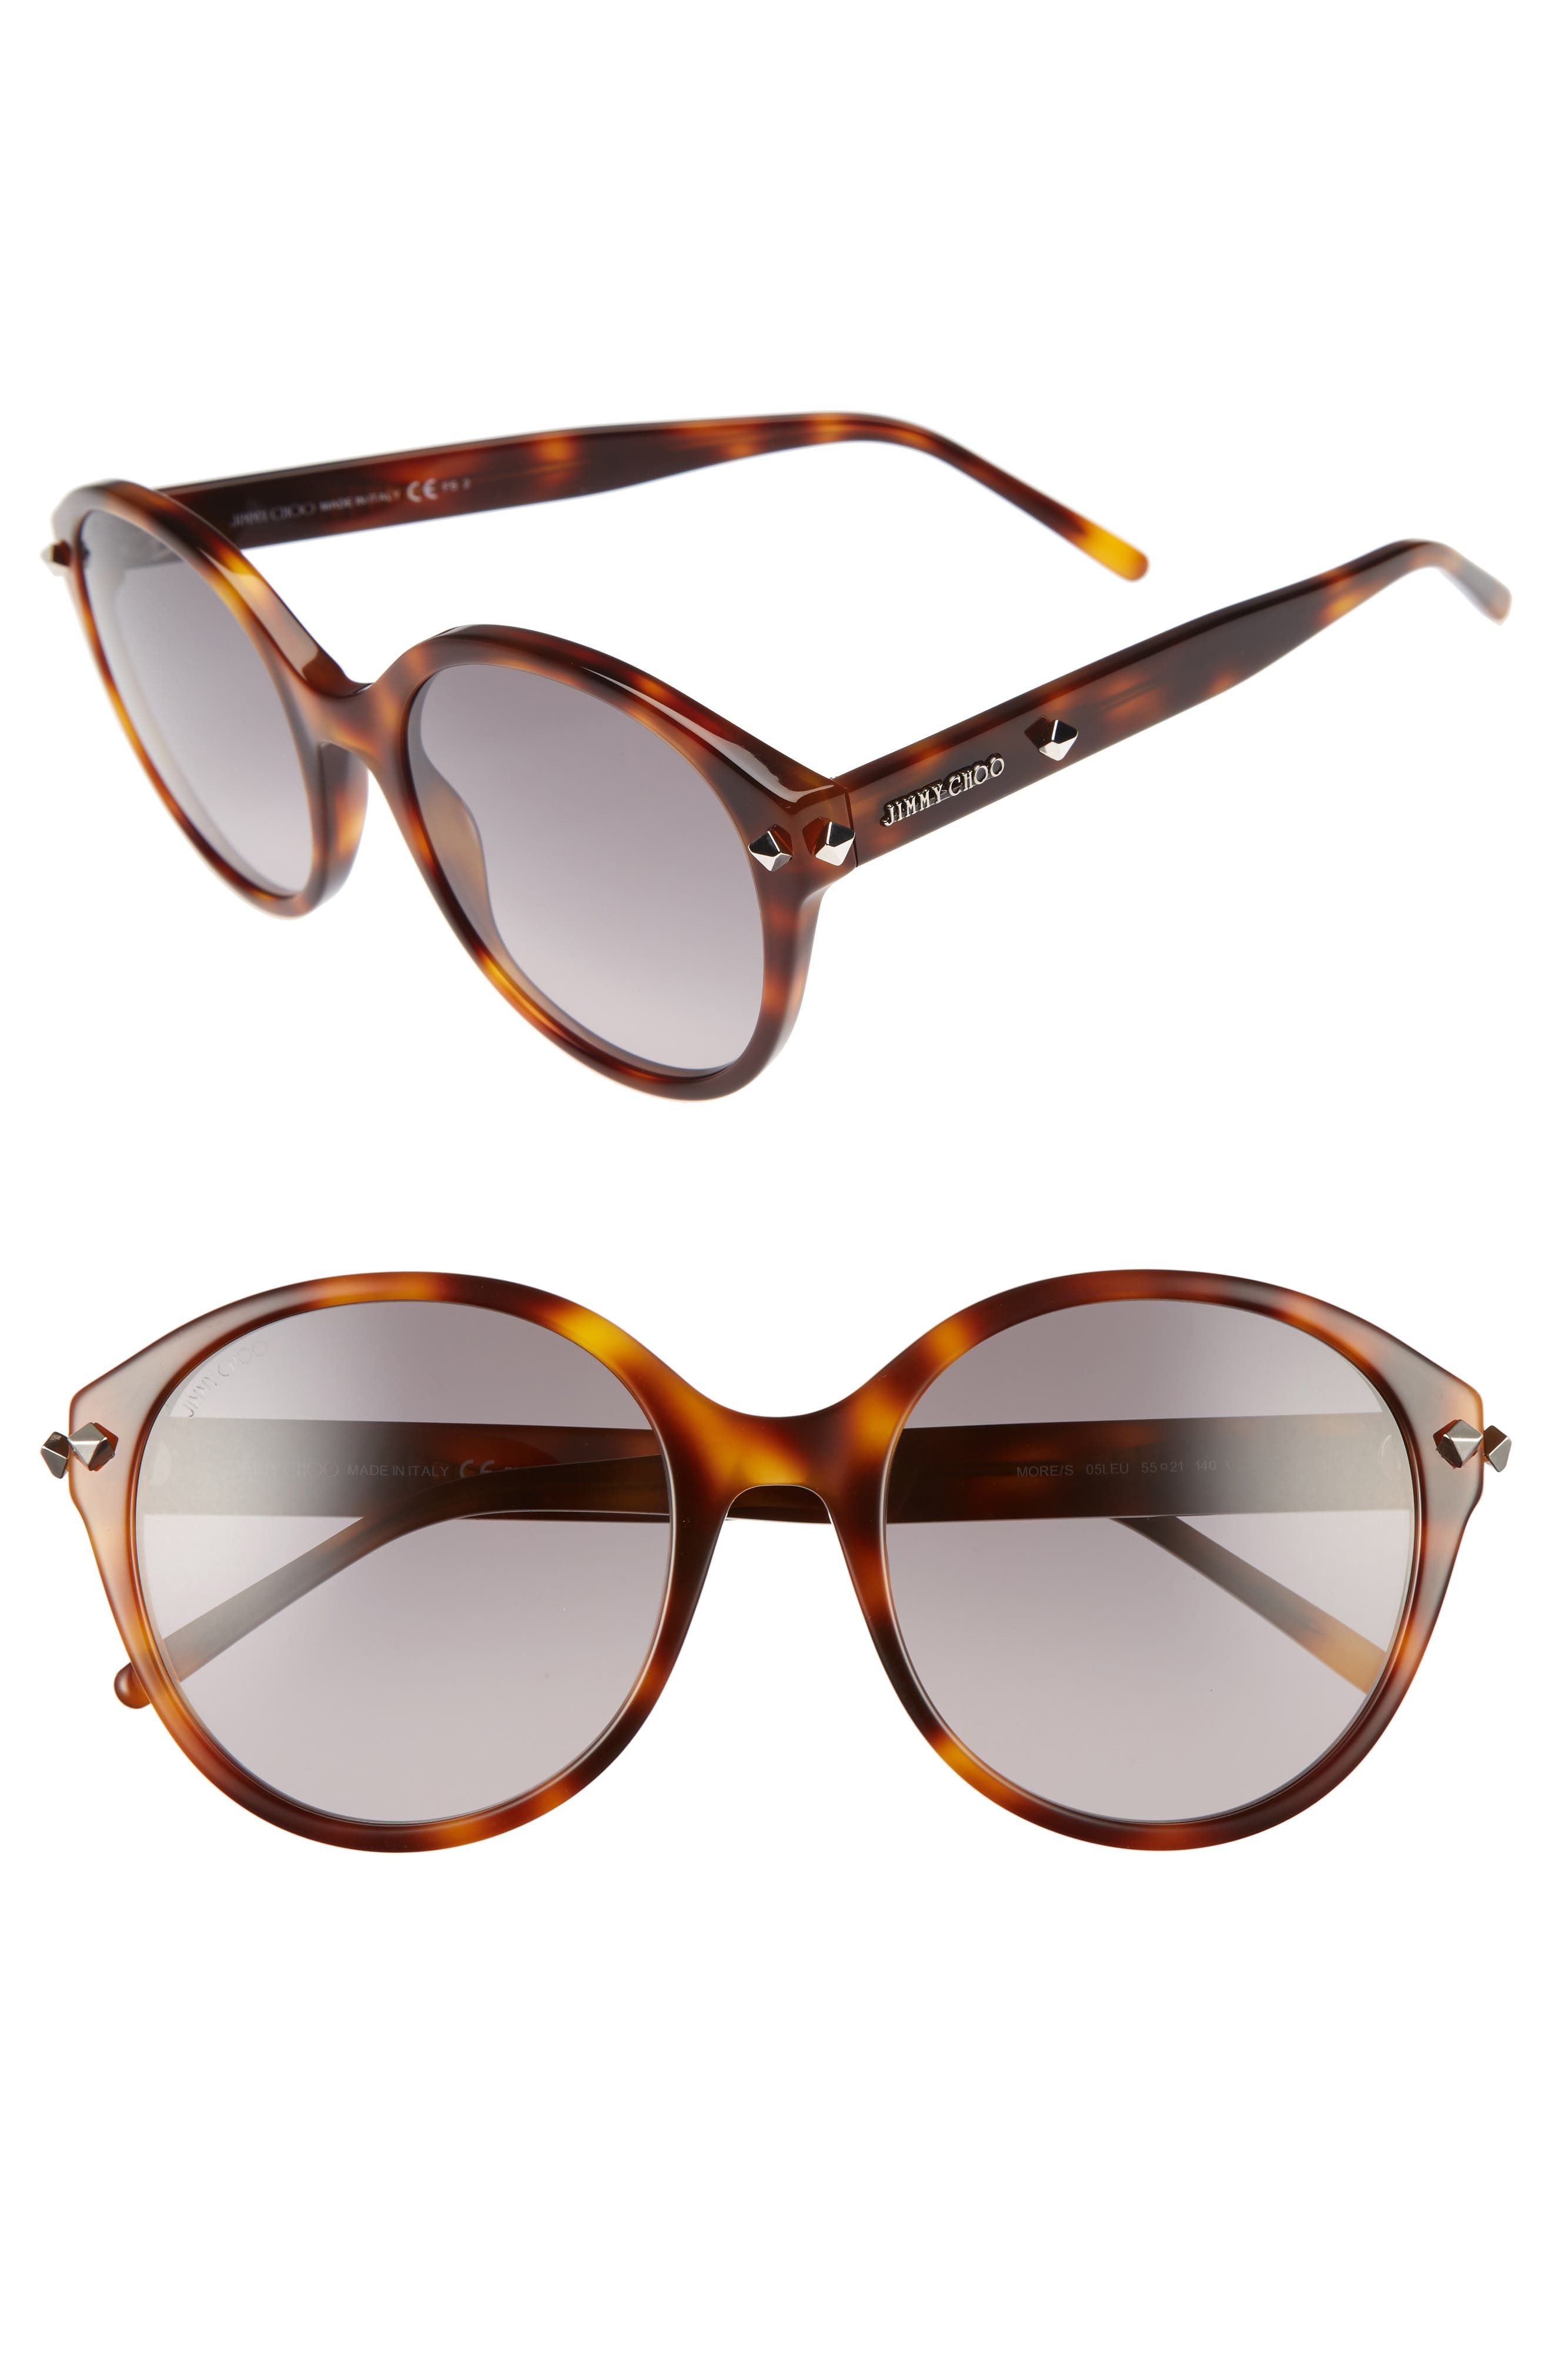 55mm Oversized Sunglasses,                             Main thumbnail 2, color,